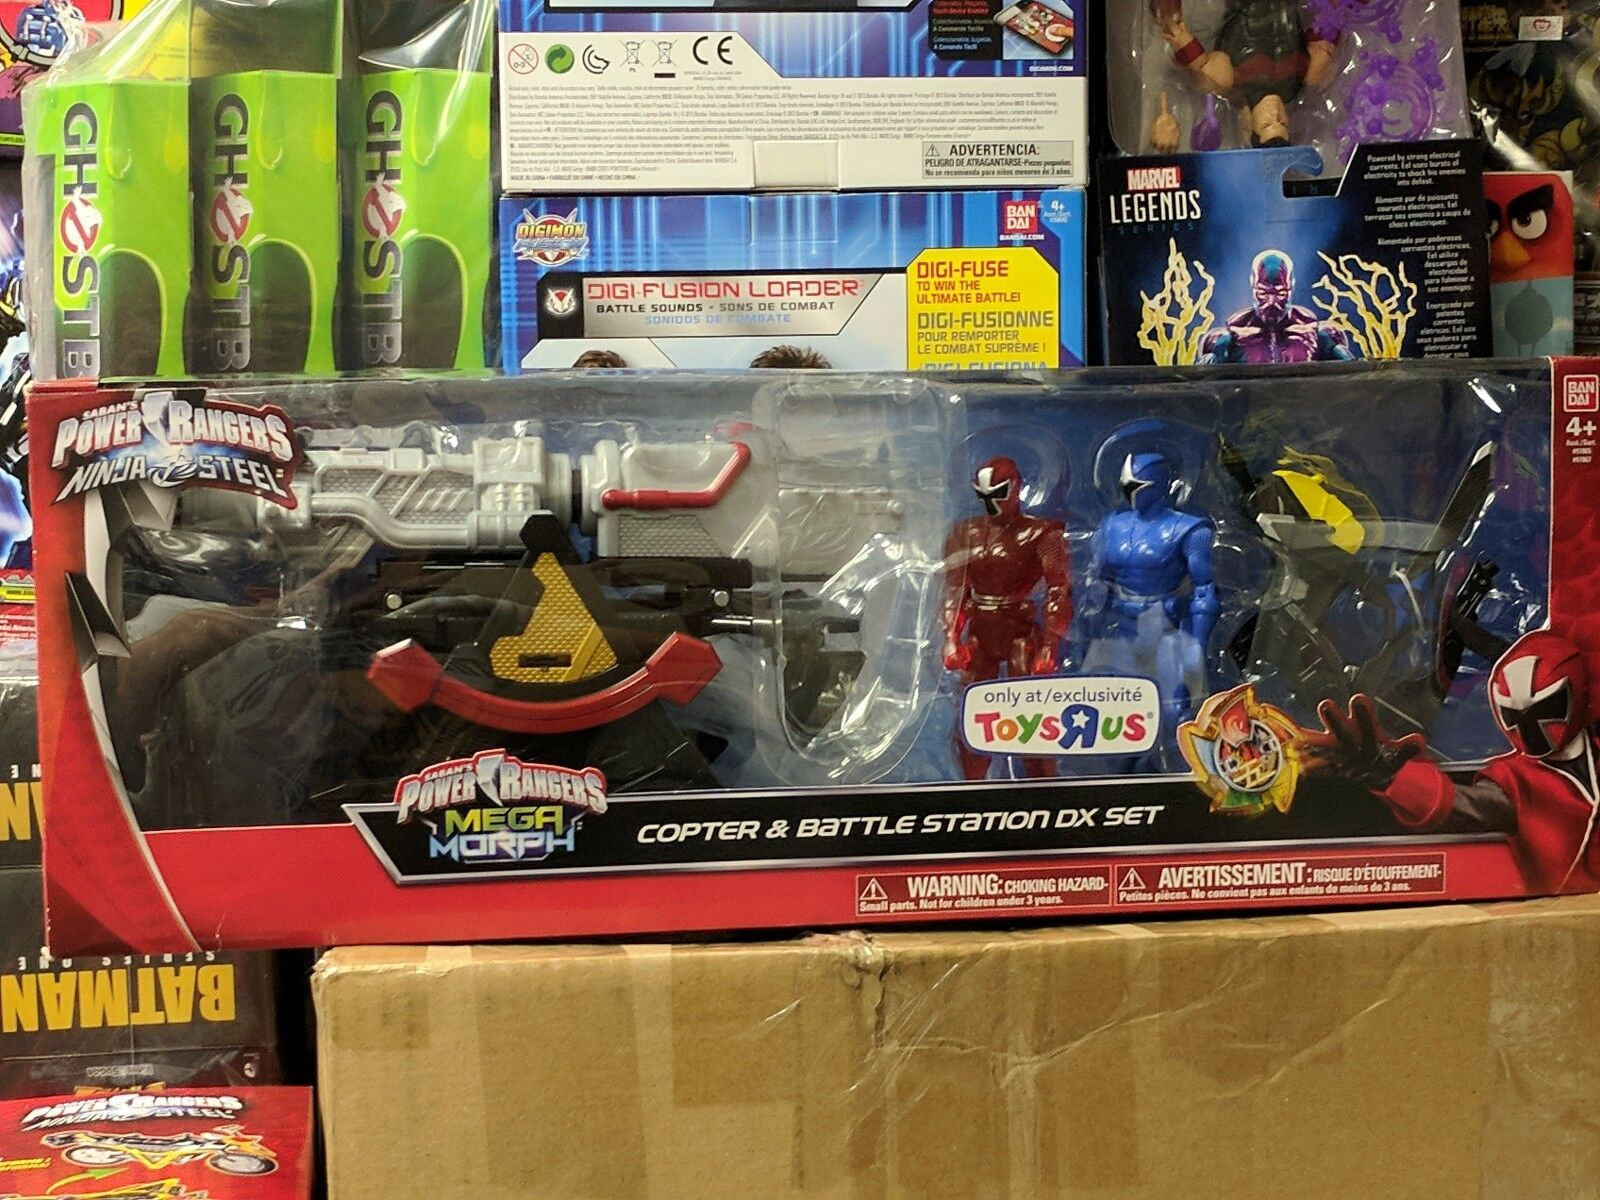 Power Rangers Copter & Battle Station DX Set Toysrus Exclusive Brand New